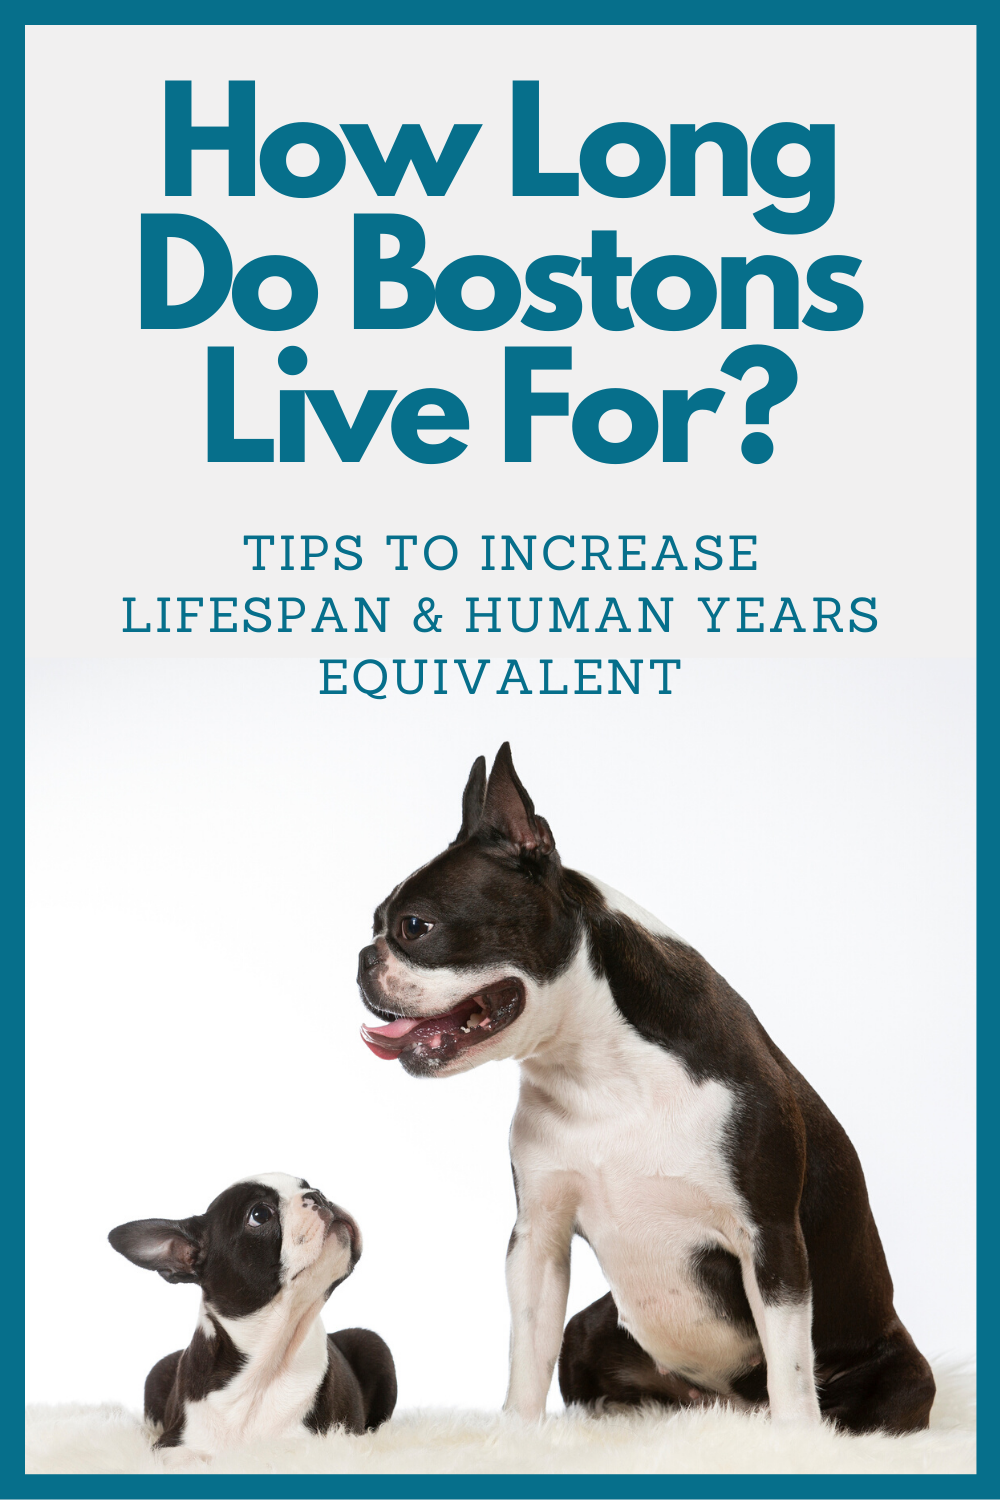 How Old Is Your Boston Terrier In Human Years Vitality Tips More In 2020 Terrier Boston Terrier Beautiful Dogs